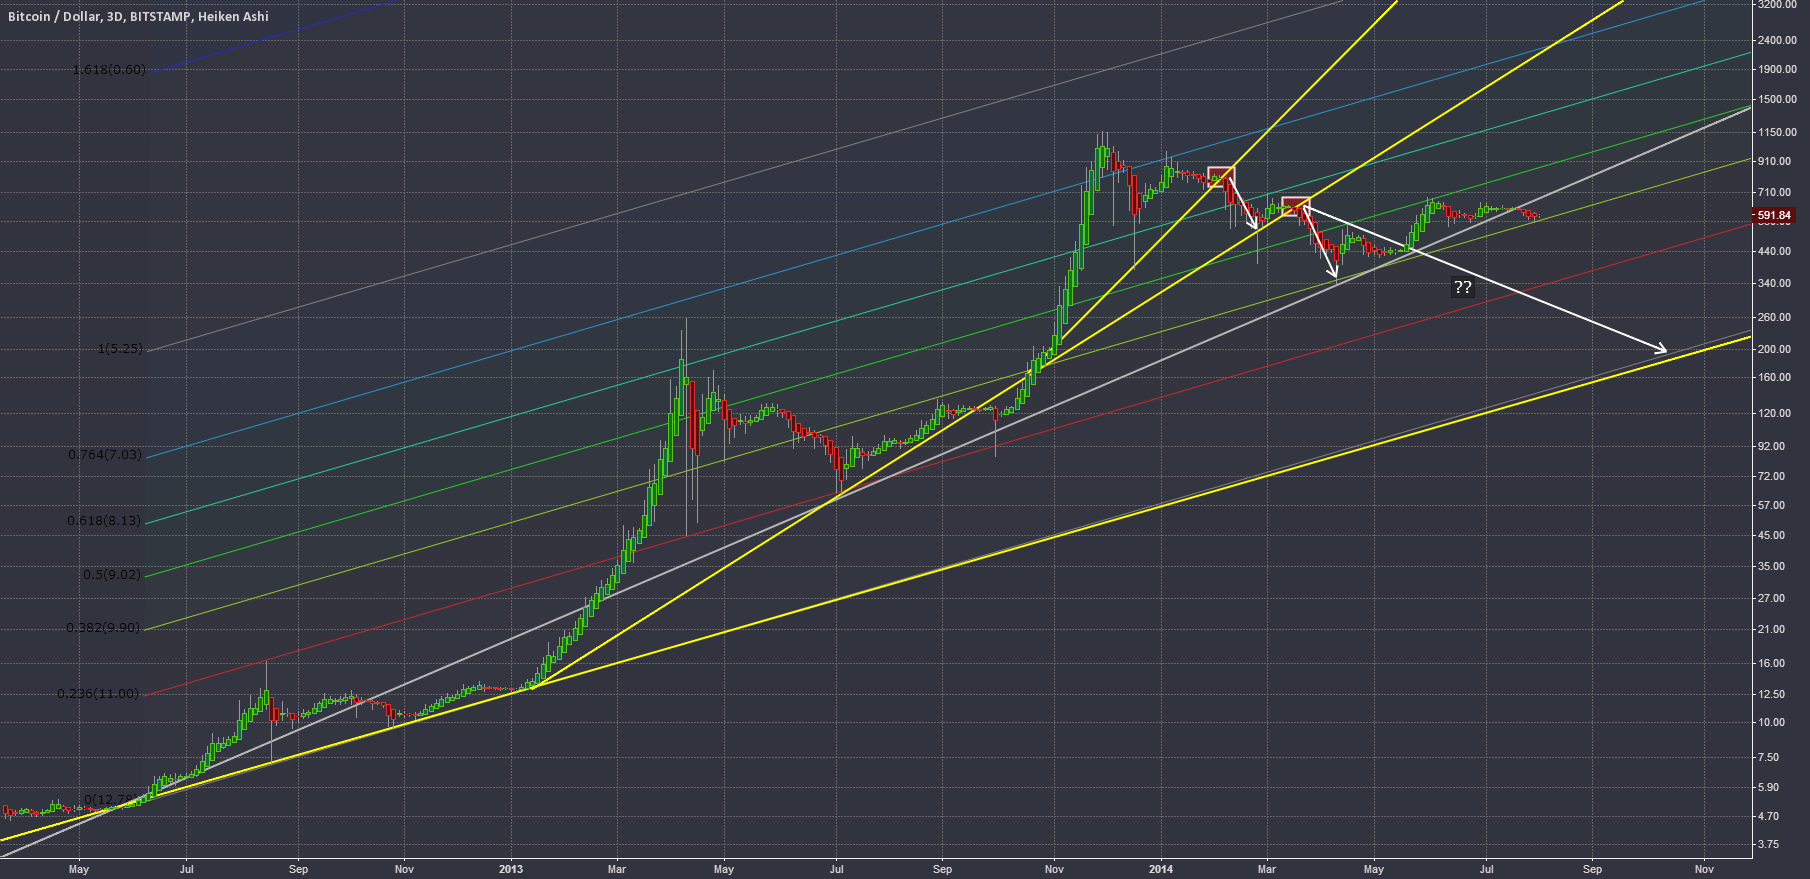 Long-term trend lines + channel